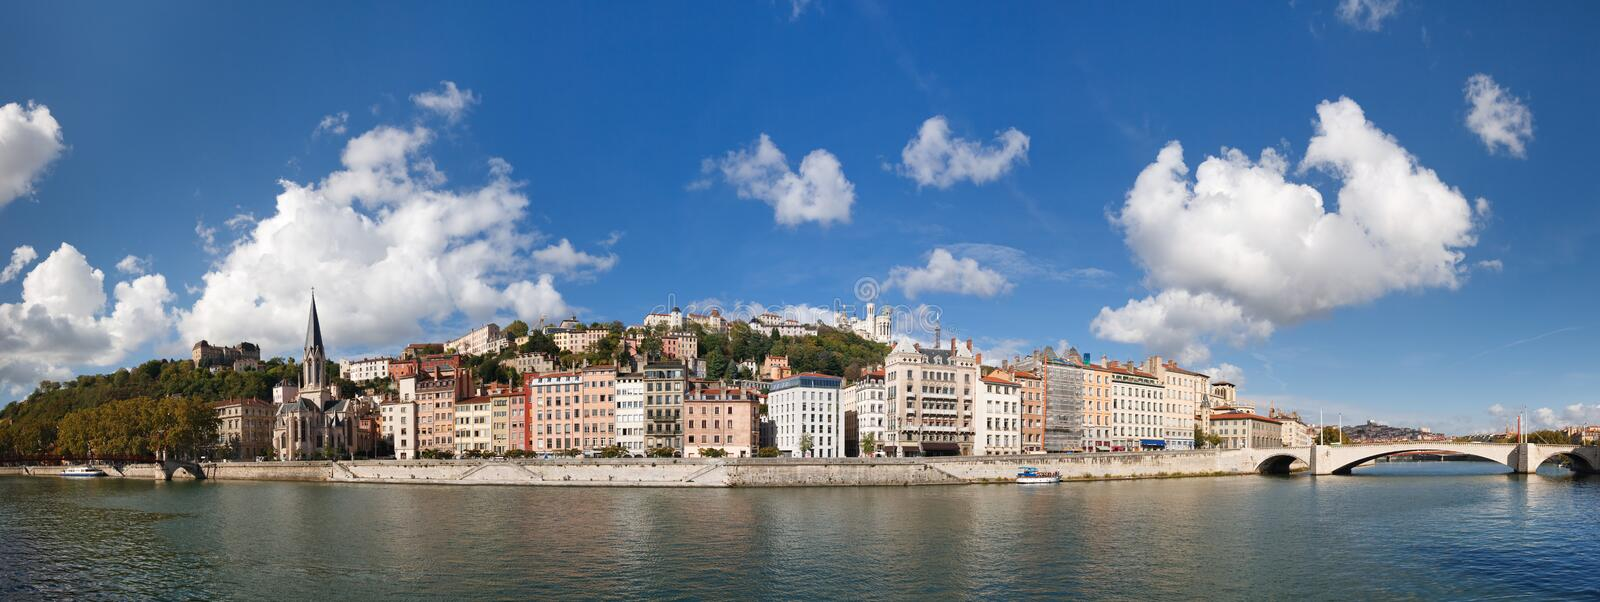 Panoramic View of Lyon, Saone River and Fourviere. Lyon, France - Panoramic View of Vieux Lyon, Saone River and Fourviere. Colorful Houses. Clear Blue Sky royalty free stock image